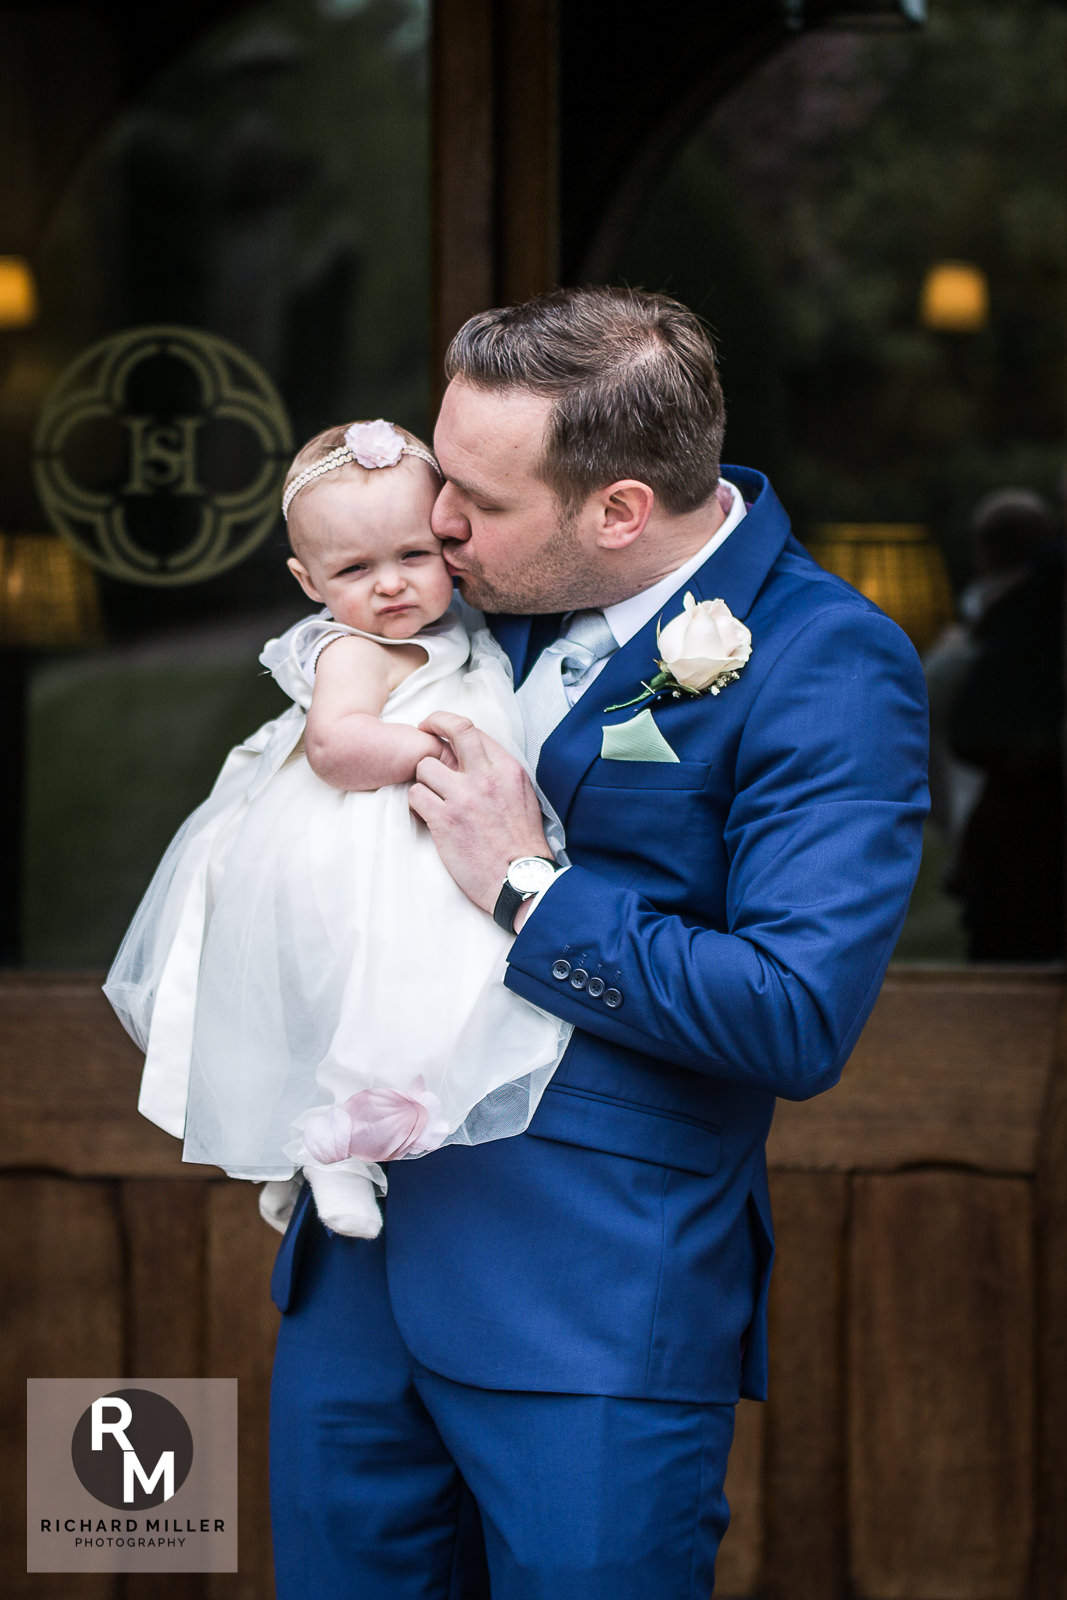 P R 8 - Pete & Roxy's Soughton Hall Outdoor Wedding